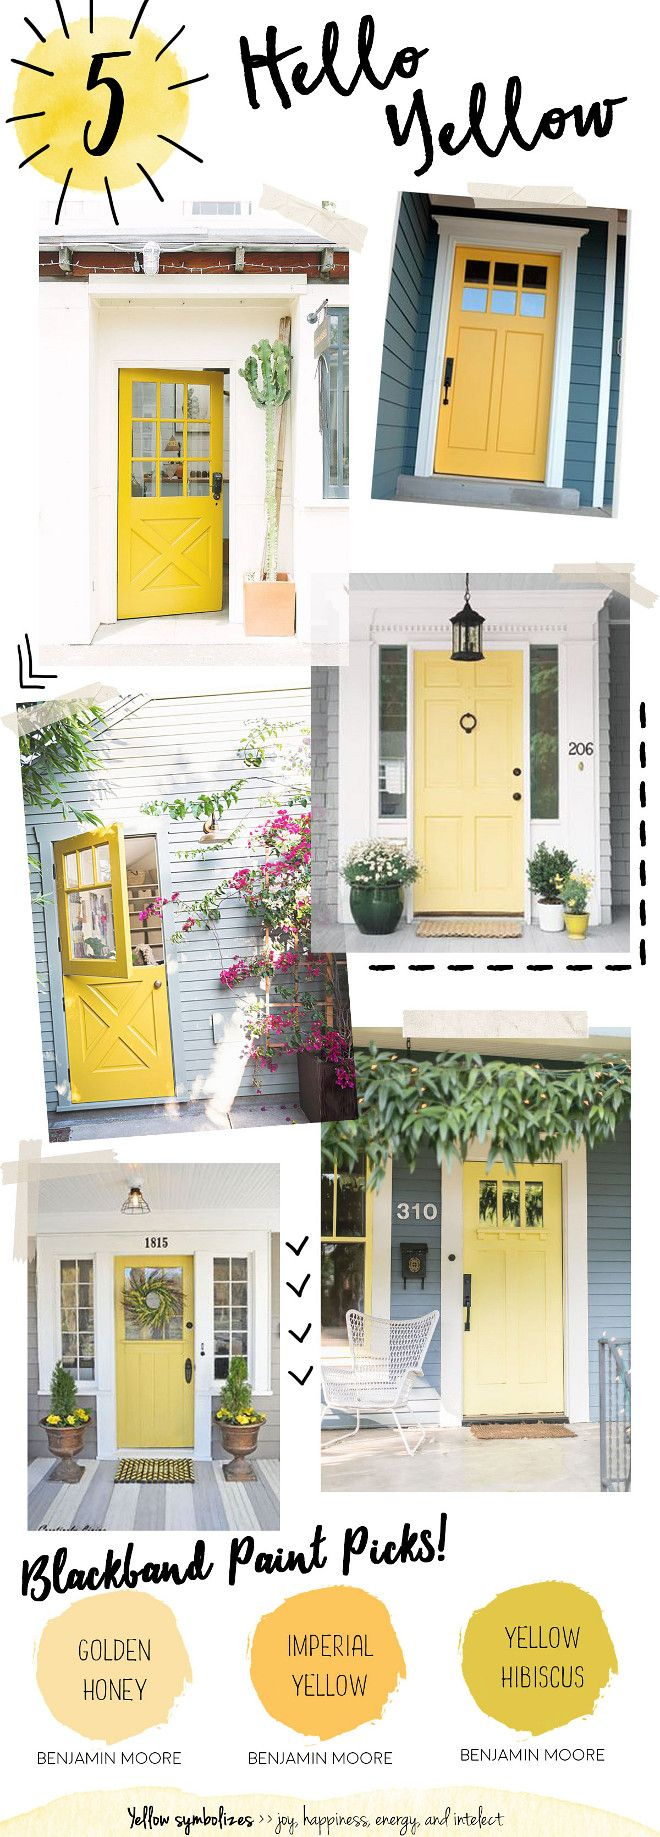 Yellow Door Paint Color. Yellow Front Door Paint Color. Benjamin Moore  Golden Honey.